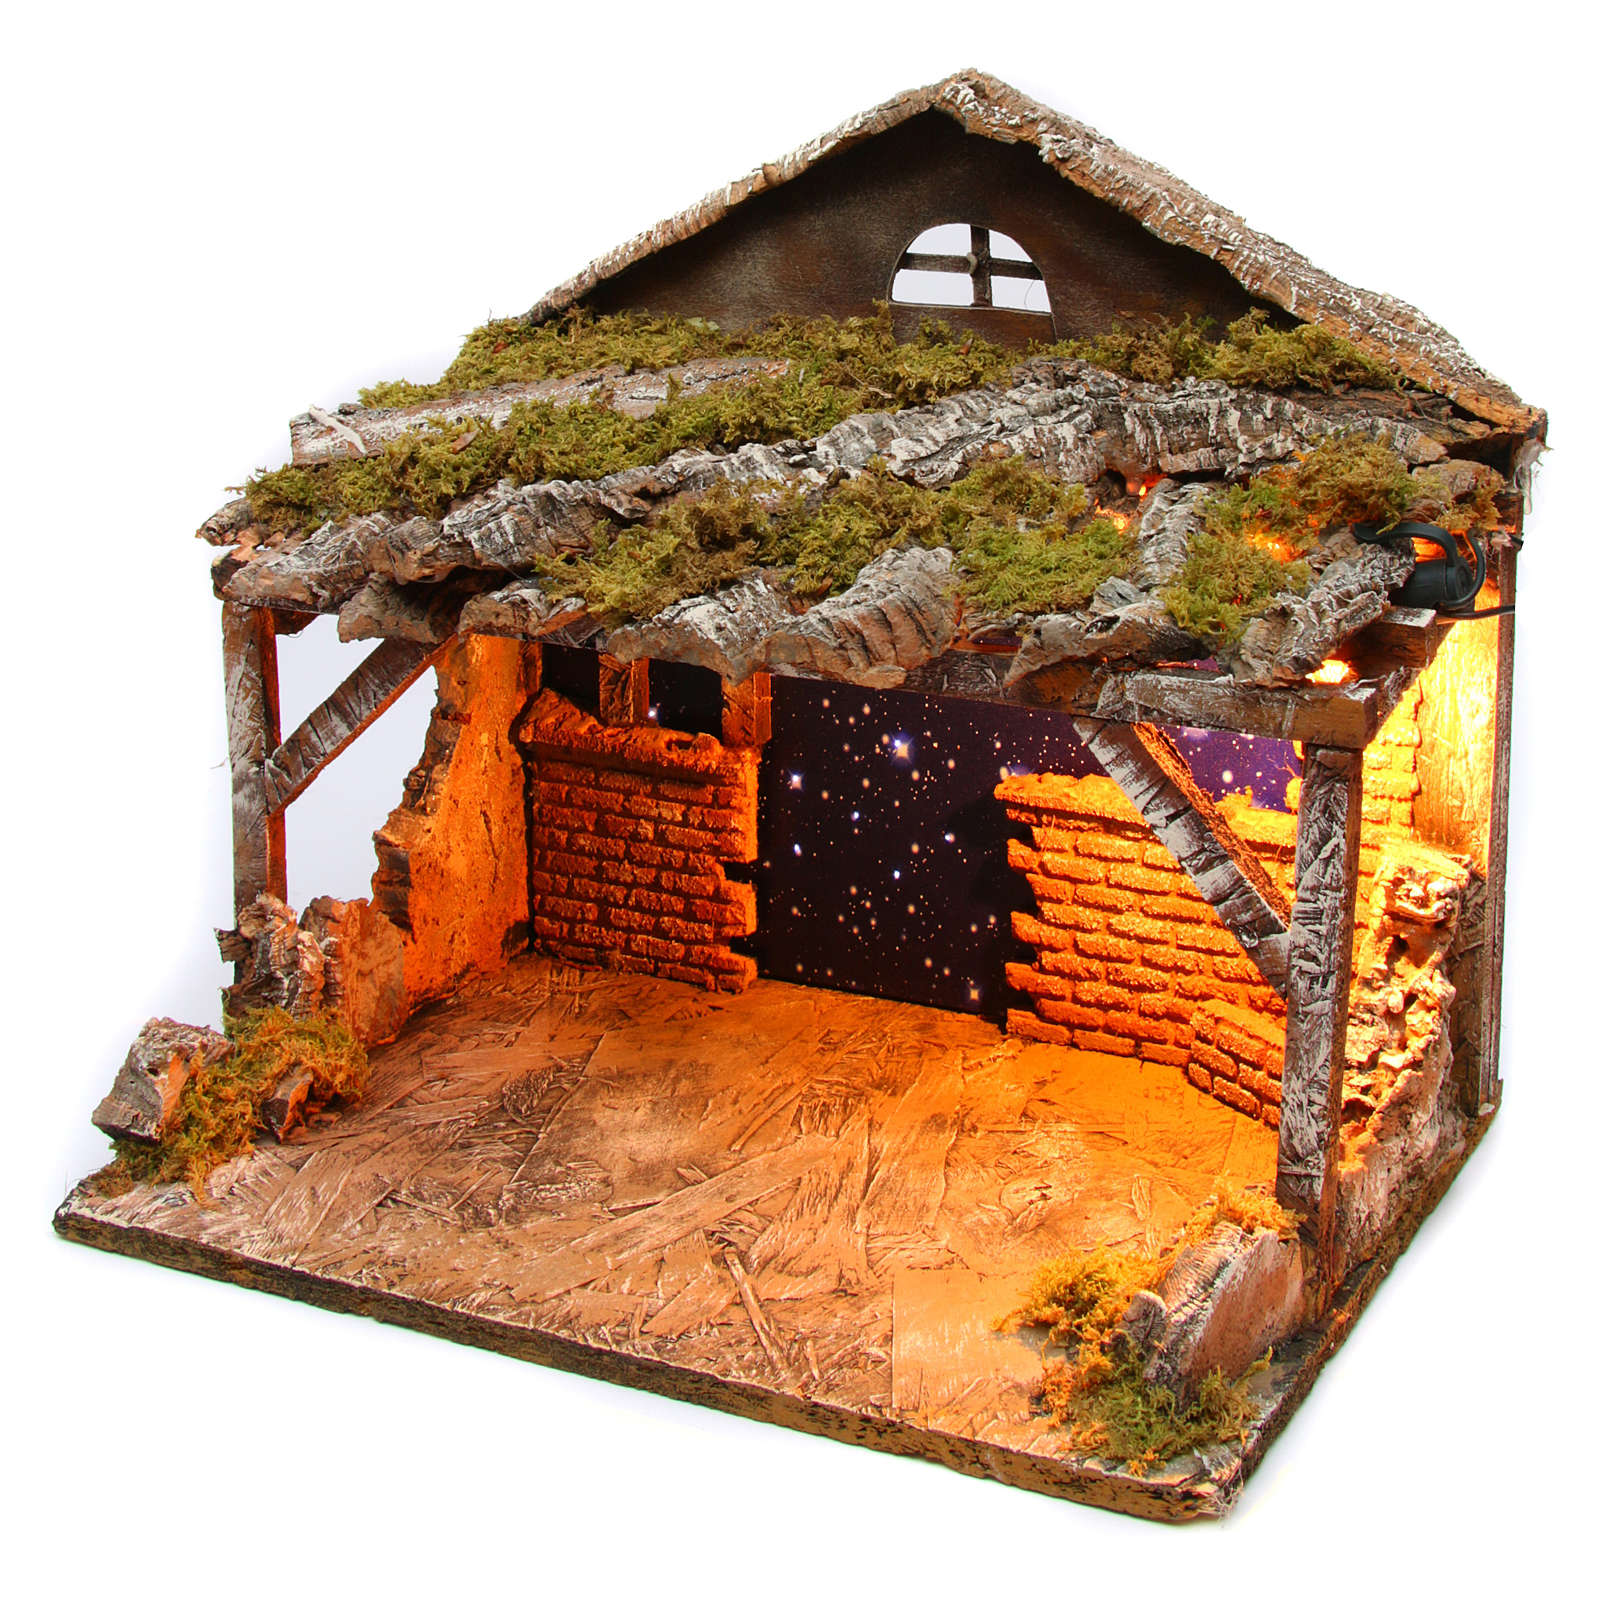 Hut with sky 25x35x25 cm for Neapolitan Nativity Scene 4